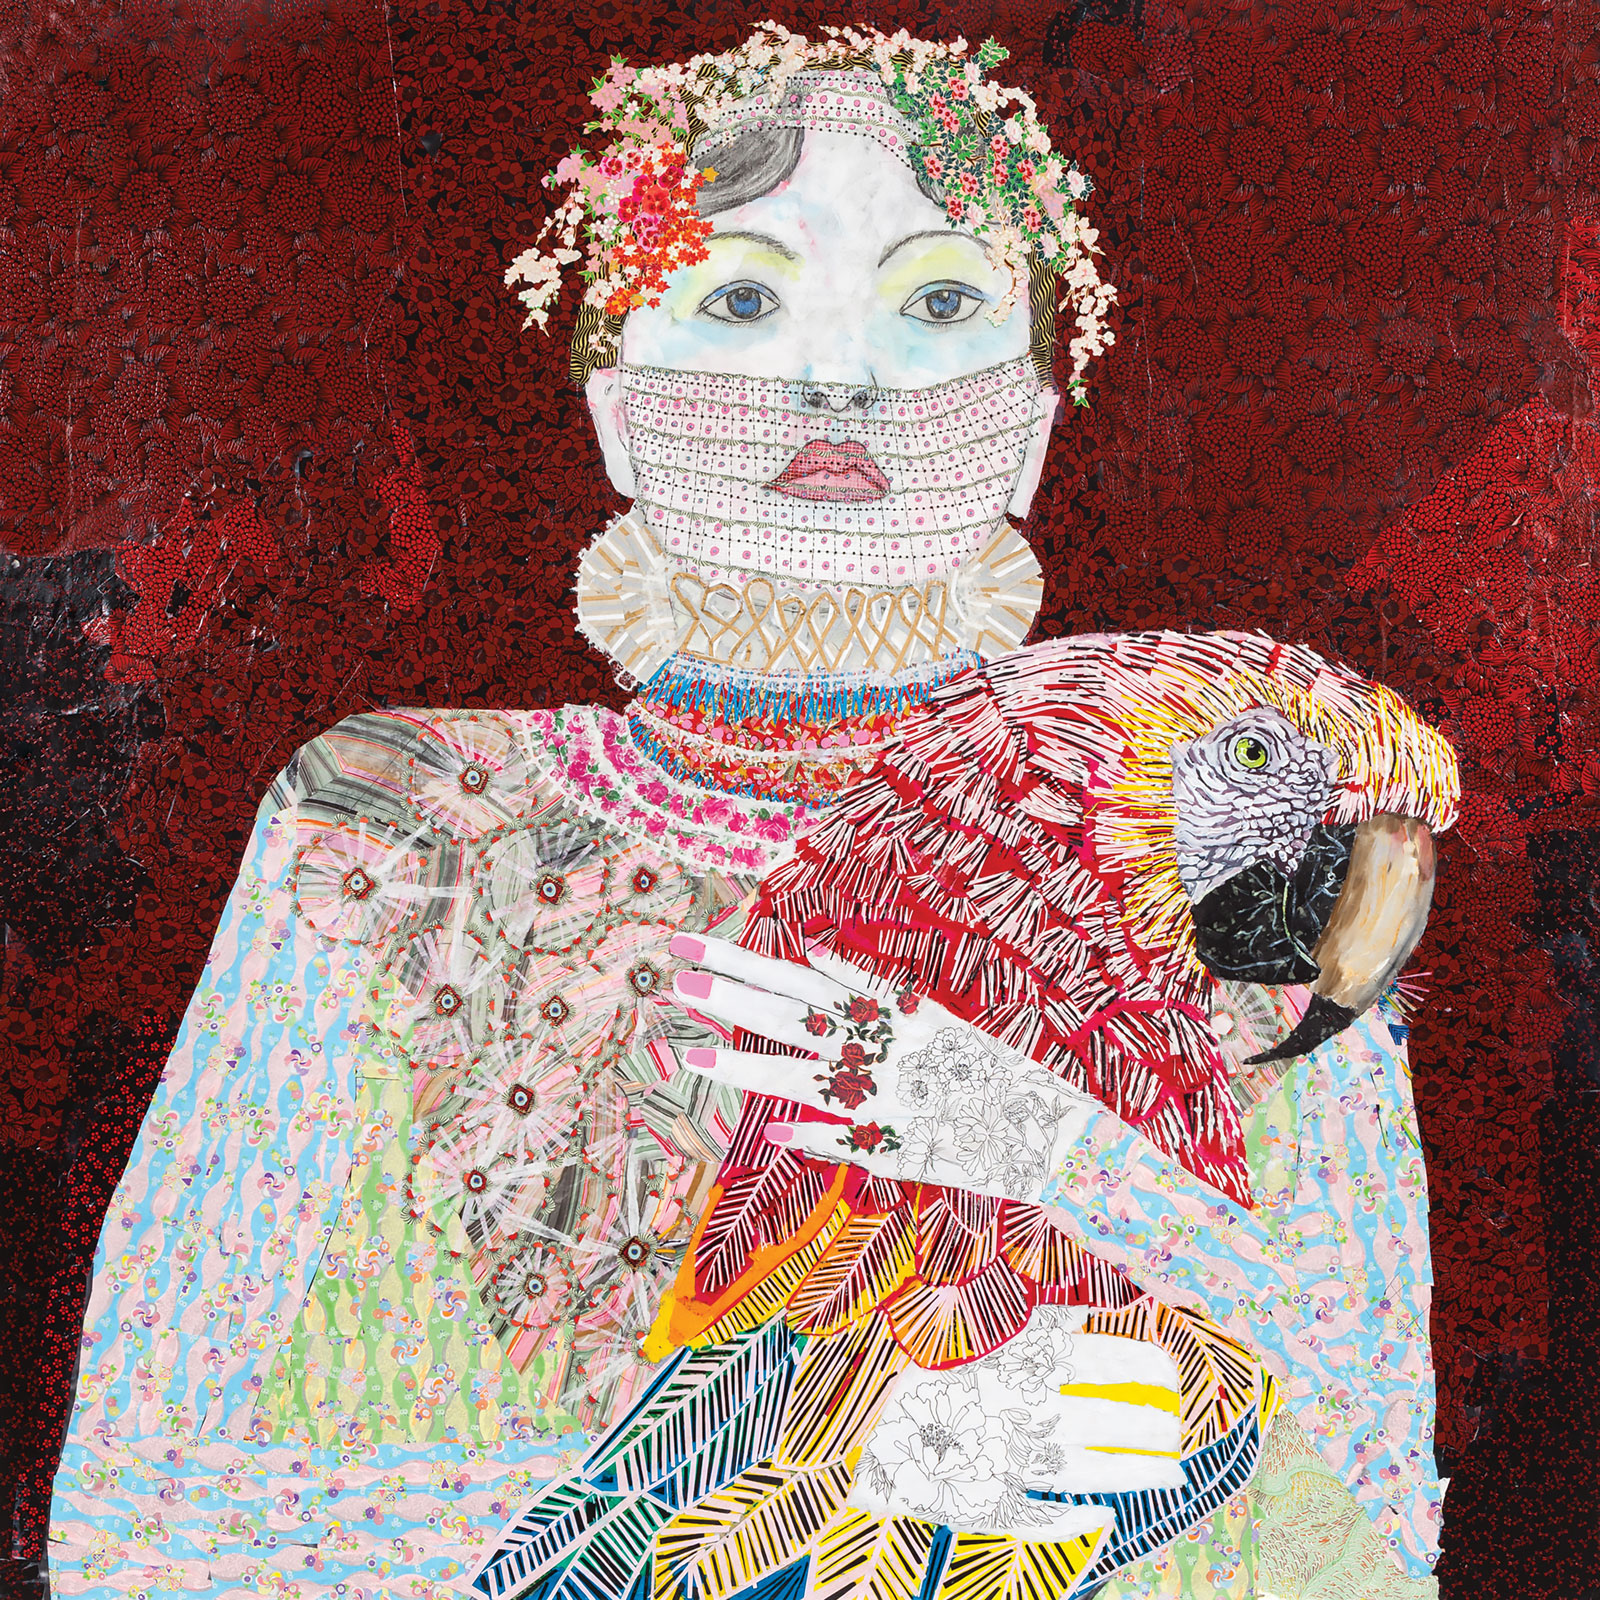 <i>The Lovers</i> (2015), 72˝ × 72˝, collage with Japanese papers and watercolor paint with Swarovski rhinestones on canvas